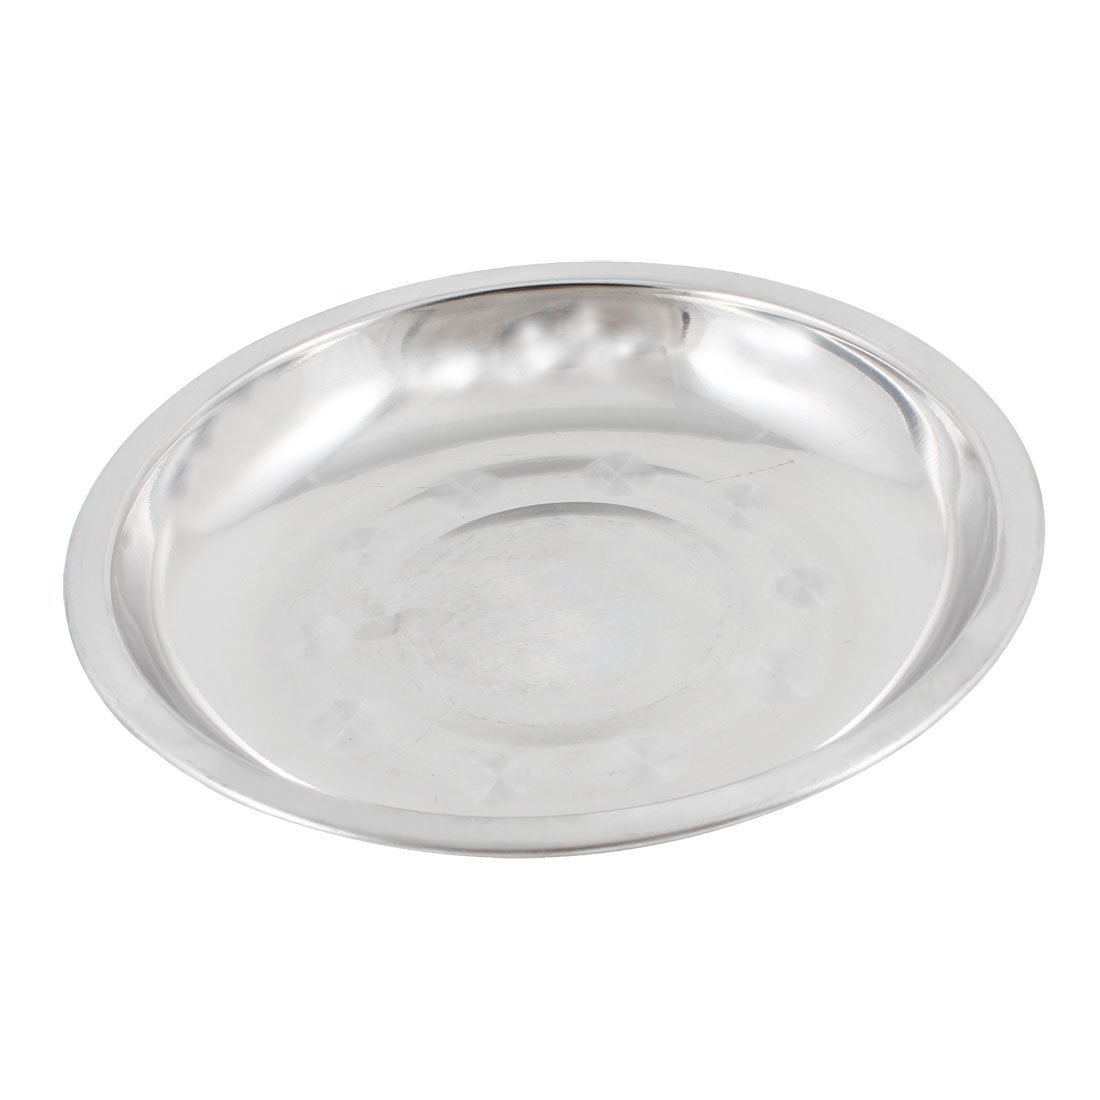 Stainless Steel Dinner Plate - TOOGOO(R) Camping 17.8cm Dia Stainless Steel Tableware Dinner Plate Food Container